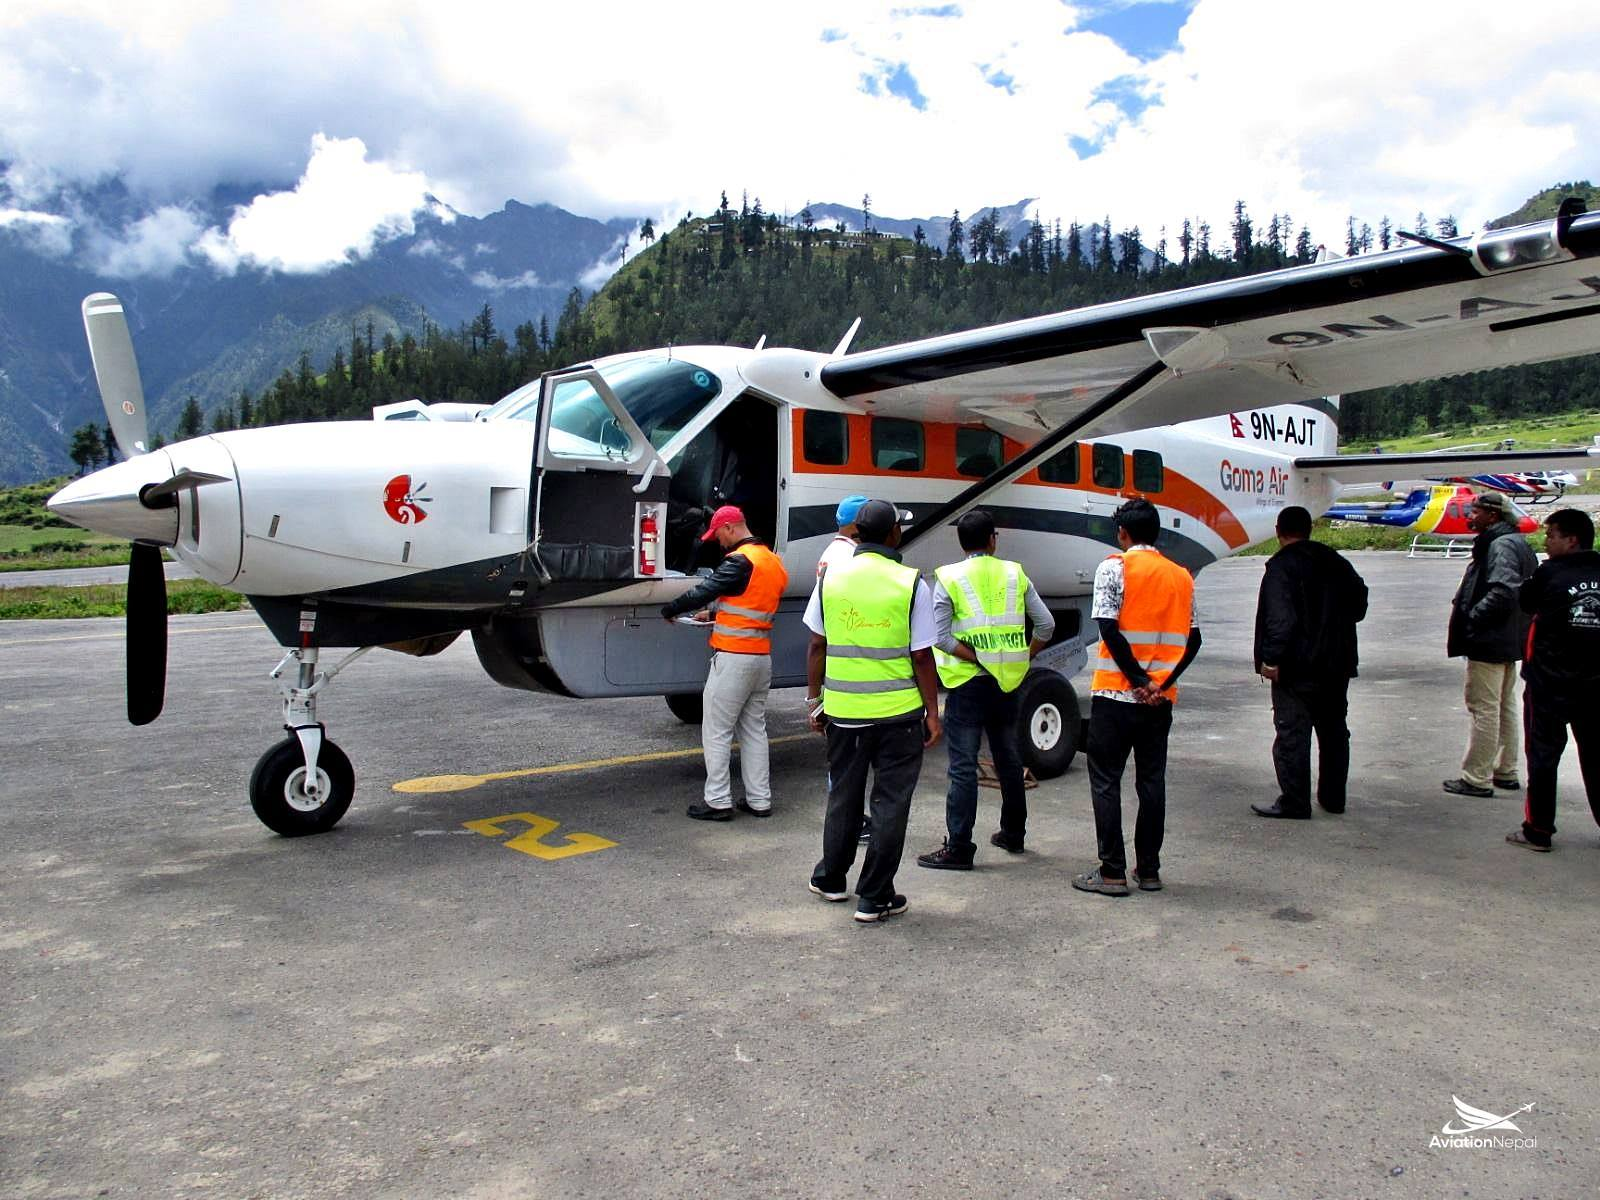 Goma air being inspected by Authorities at Simikot Airport.